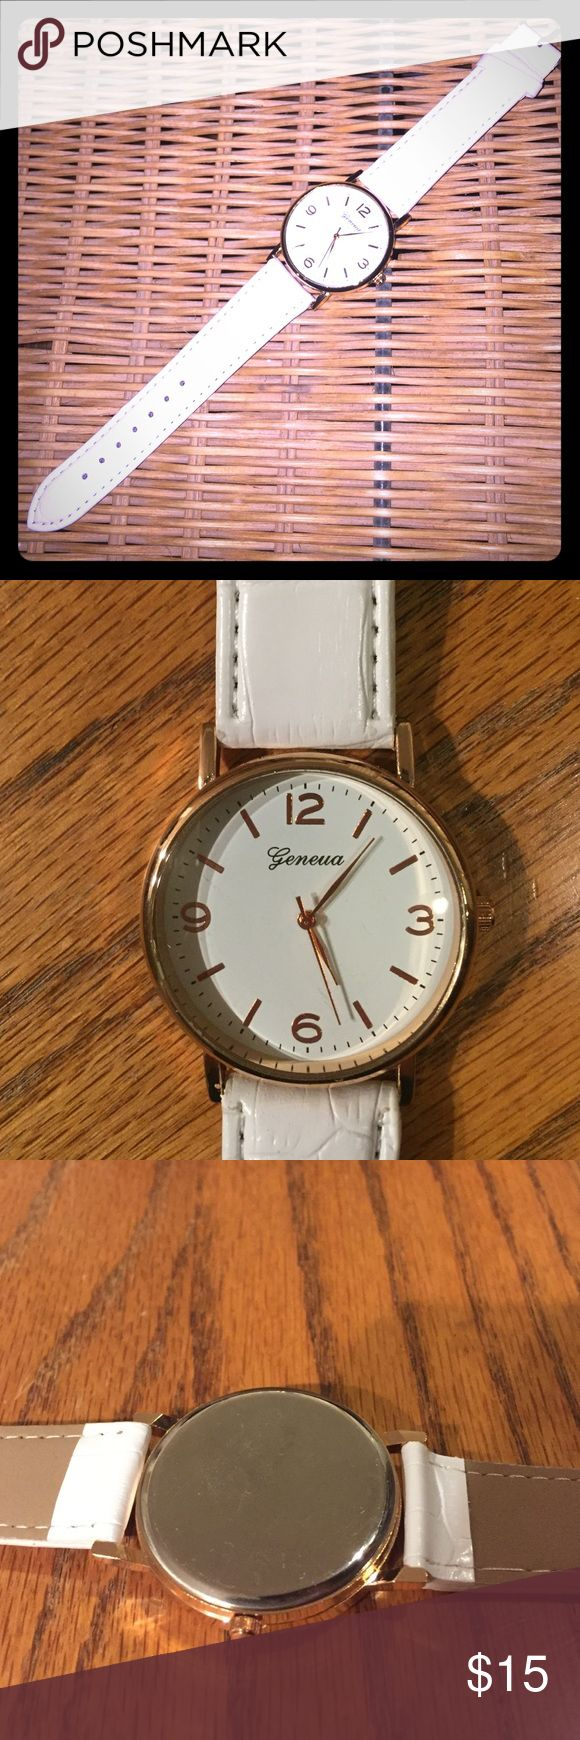 NOW ACCEPTING TRADES FOR THIS WATCH! White and Rose Gold Watch: New condition - tried on only. May need a new battery because the second hand seems to stick. Strap is stiff and reminds me of leather. Make an offer! All bundles 30% cheaper. Accessories Watches